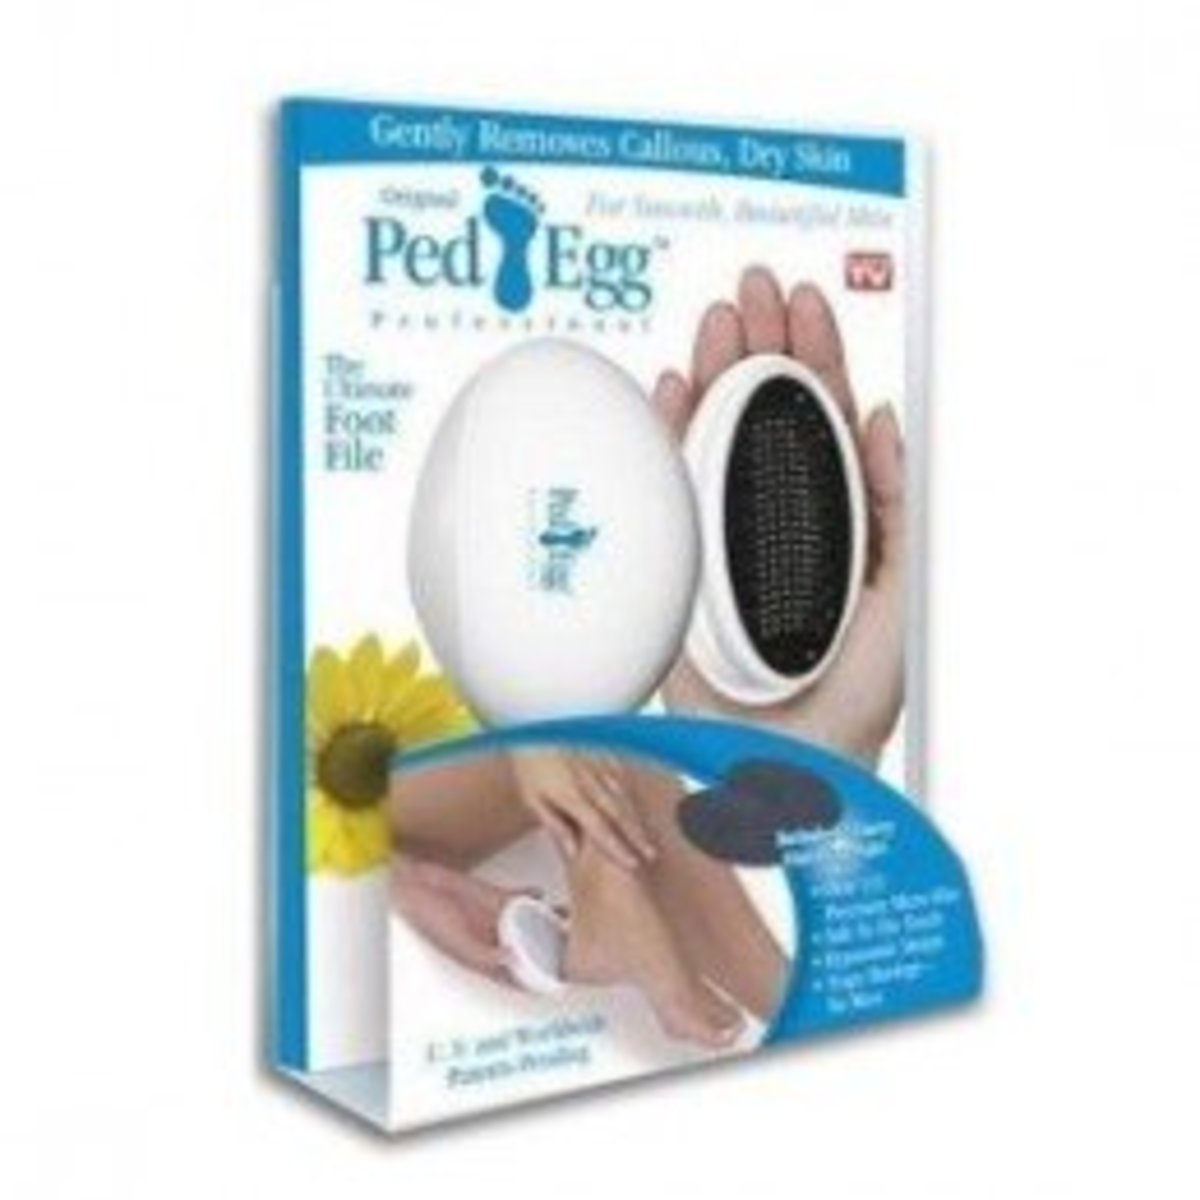 Though it's not a natural pumice stone, the Ped Egg Pedicure Foot File is still quite popular and can still be effective at getting the job done.